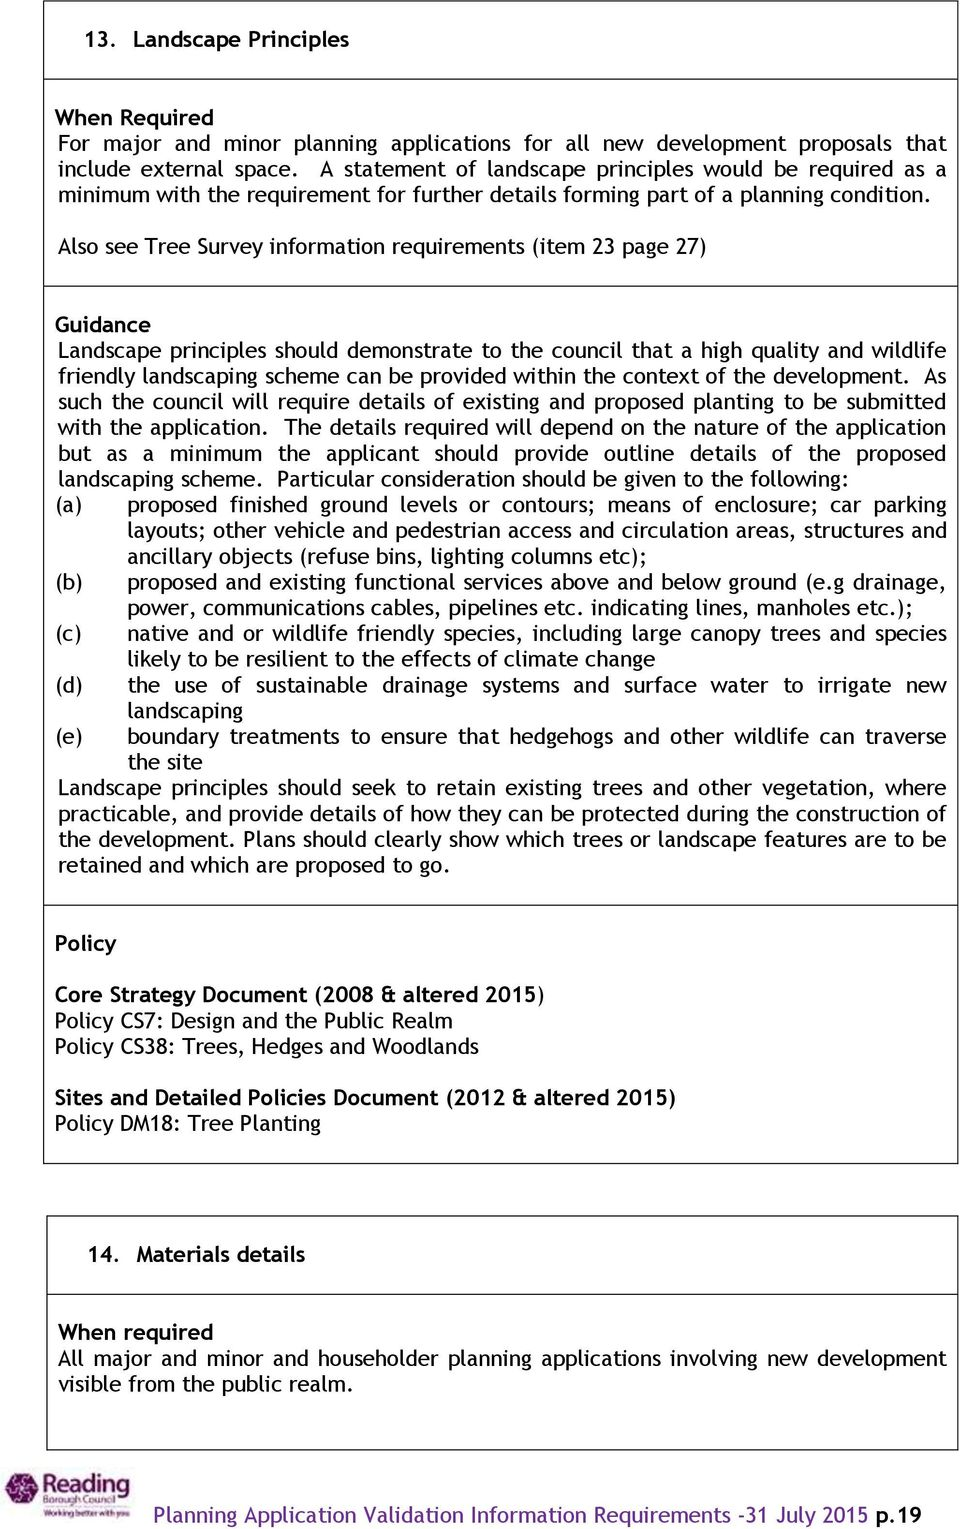 Also see Tree Survey information requirements (item 23 page 27) Landscape principles should demonstrate to the council that a high quality and wildlife friendly landscaping scheme can be provided